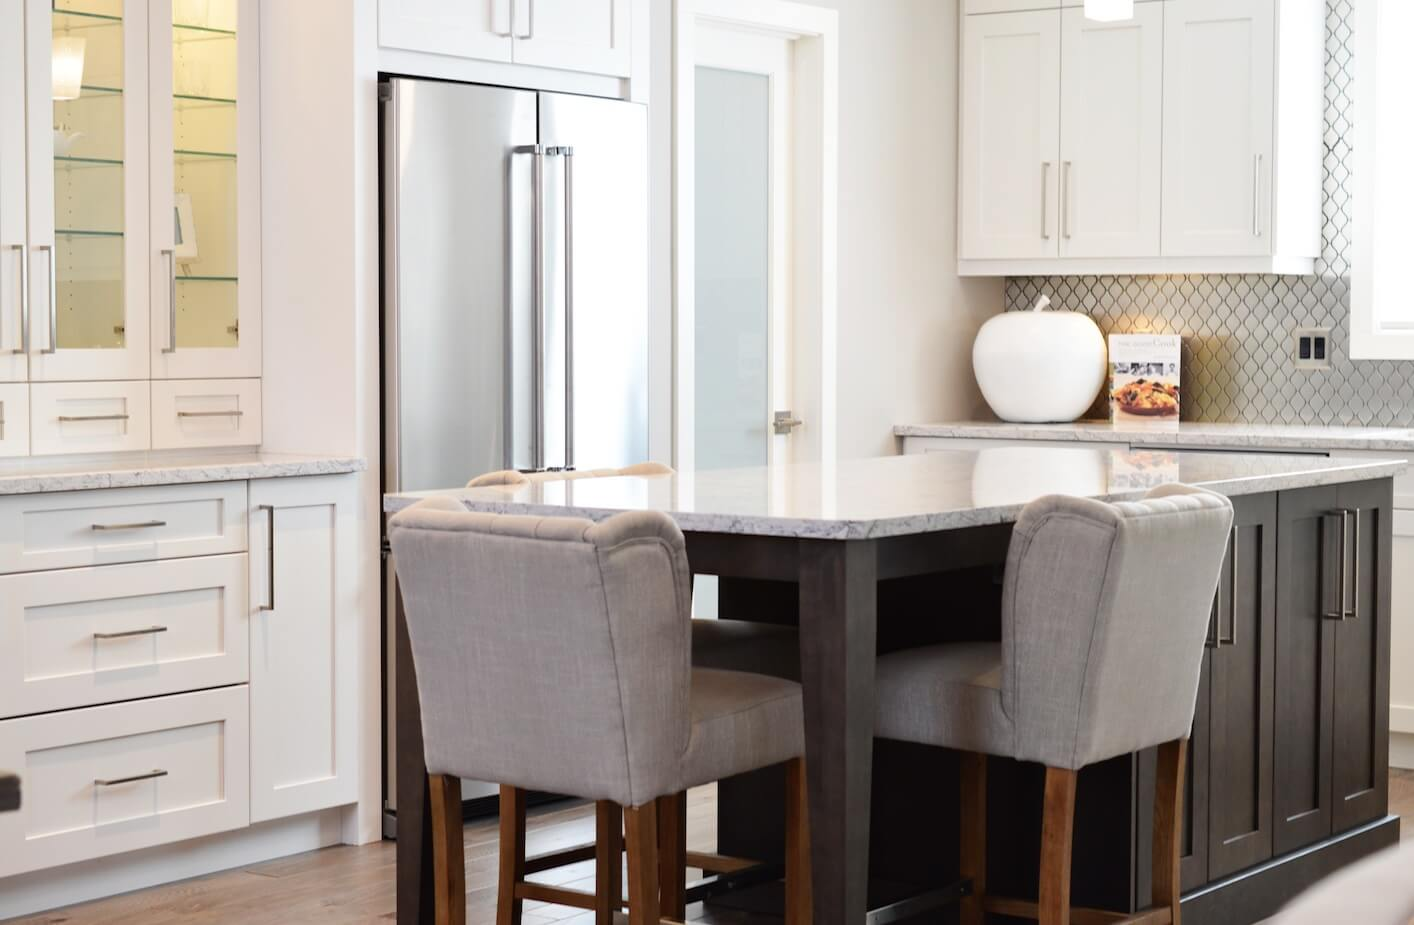 7 of the Most Popular Kitchen Layout Options for Your Home